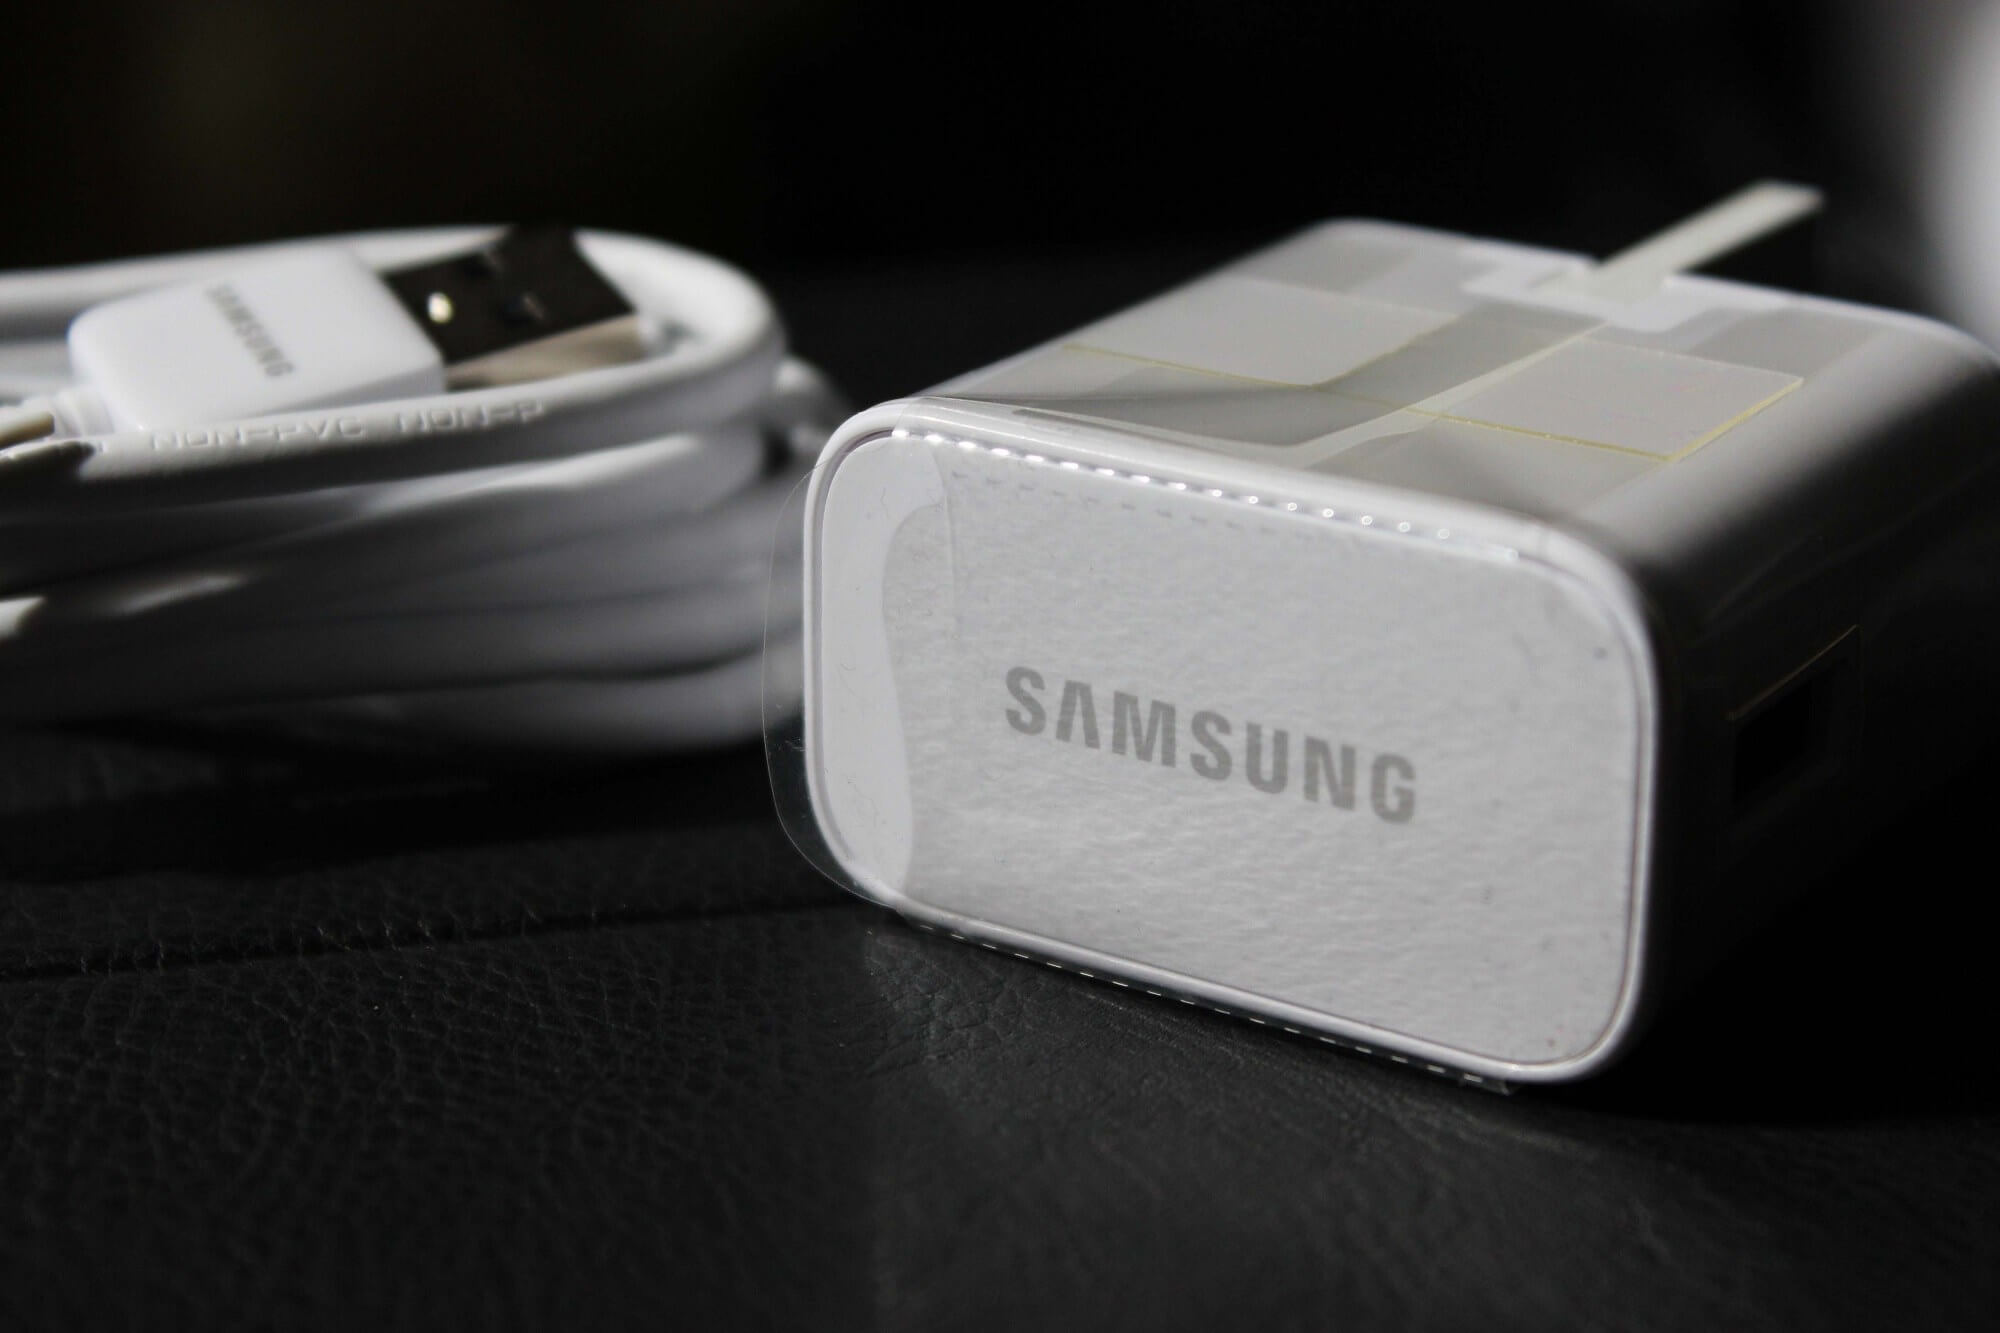 Samsung mocks Apple's decision to drop charger, suggesting it won't do the same